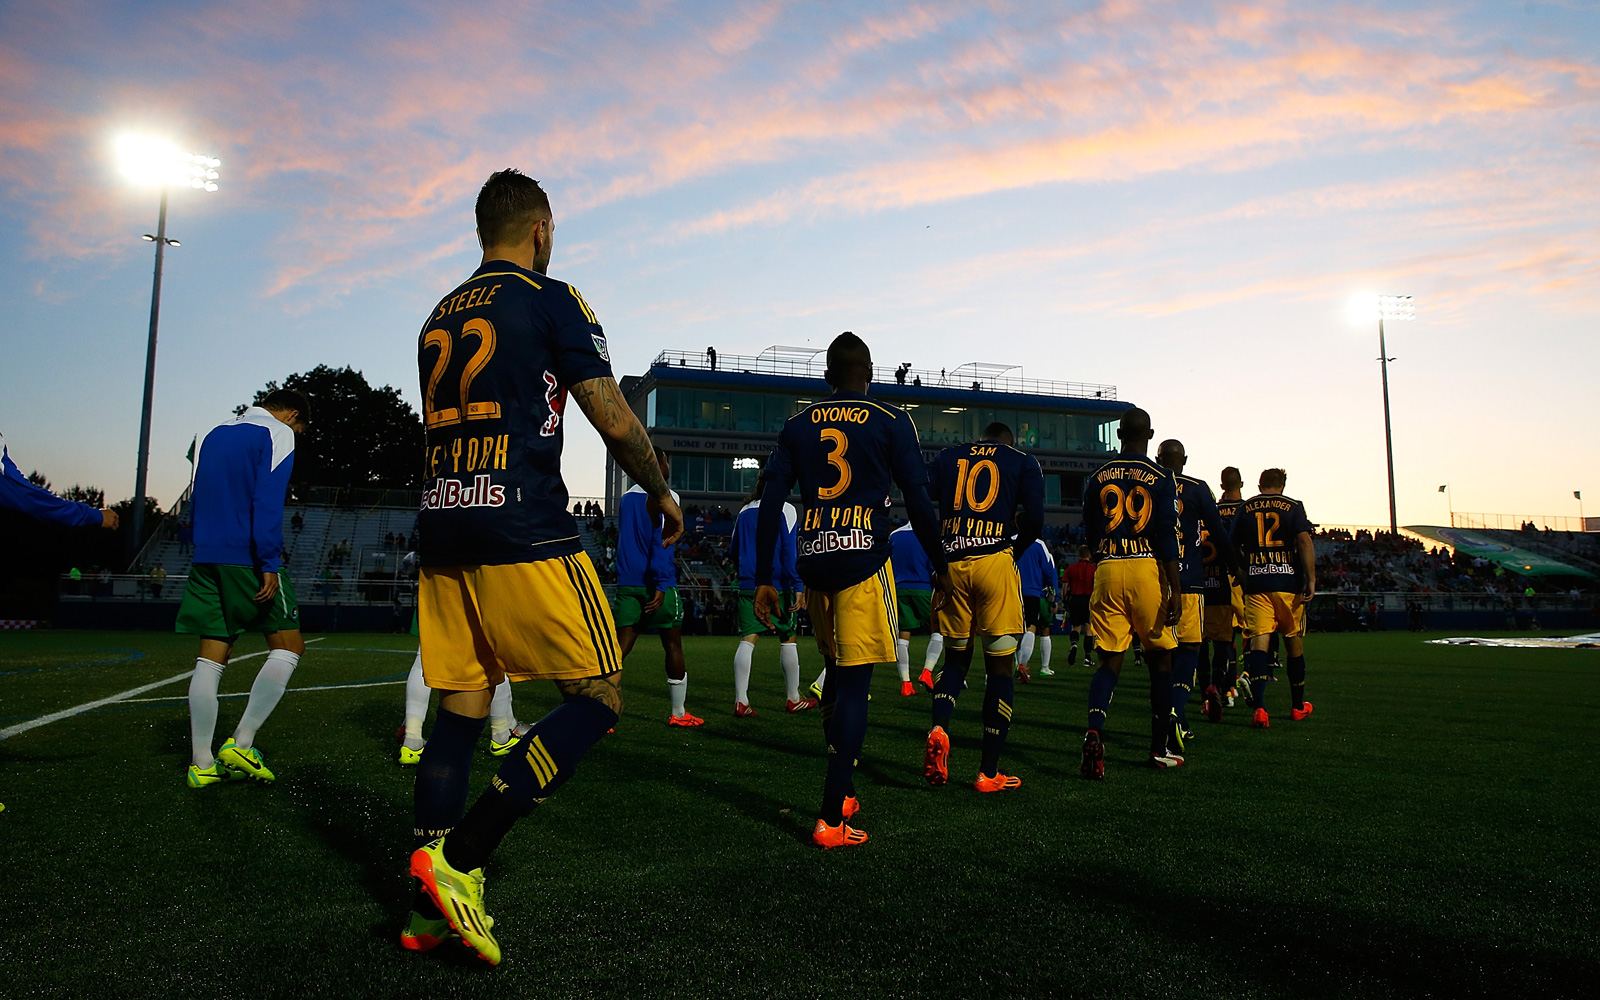 The New York Red Bulls and New York Cosmos walk out to line up ahead of their 2014 U.S. Open Cup clash at Hofstra University's Shuart Stadium.